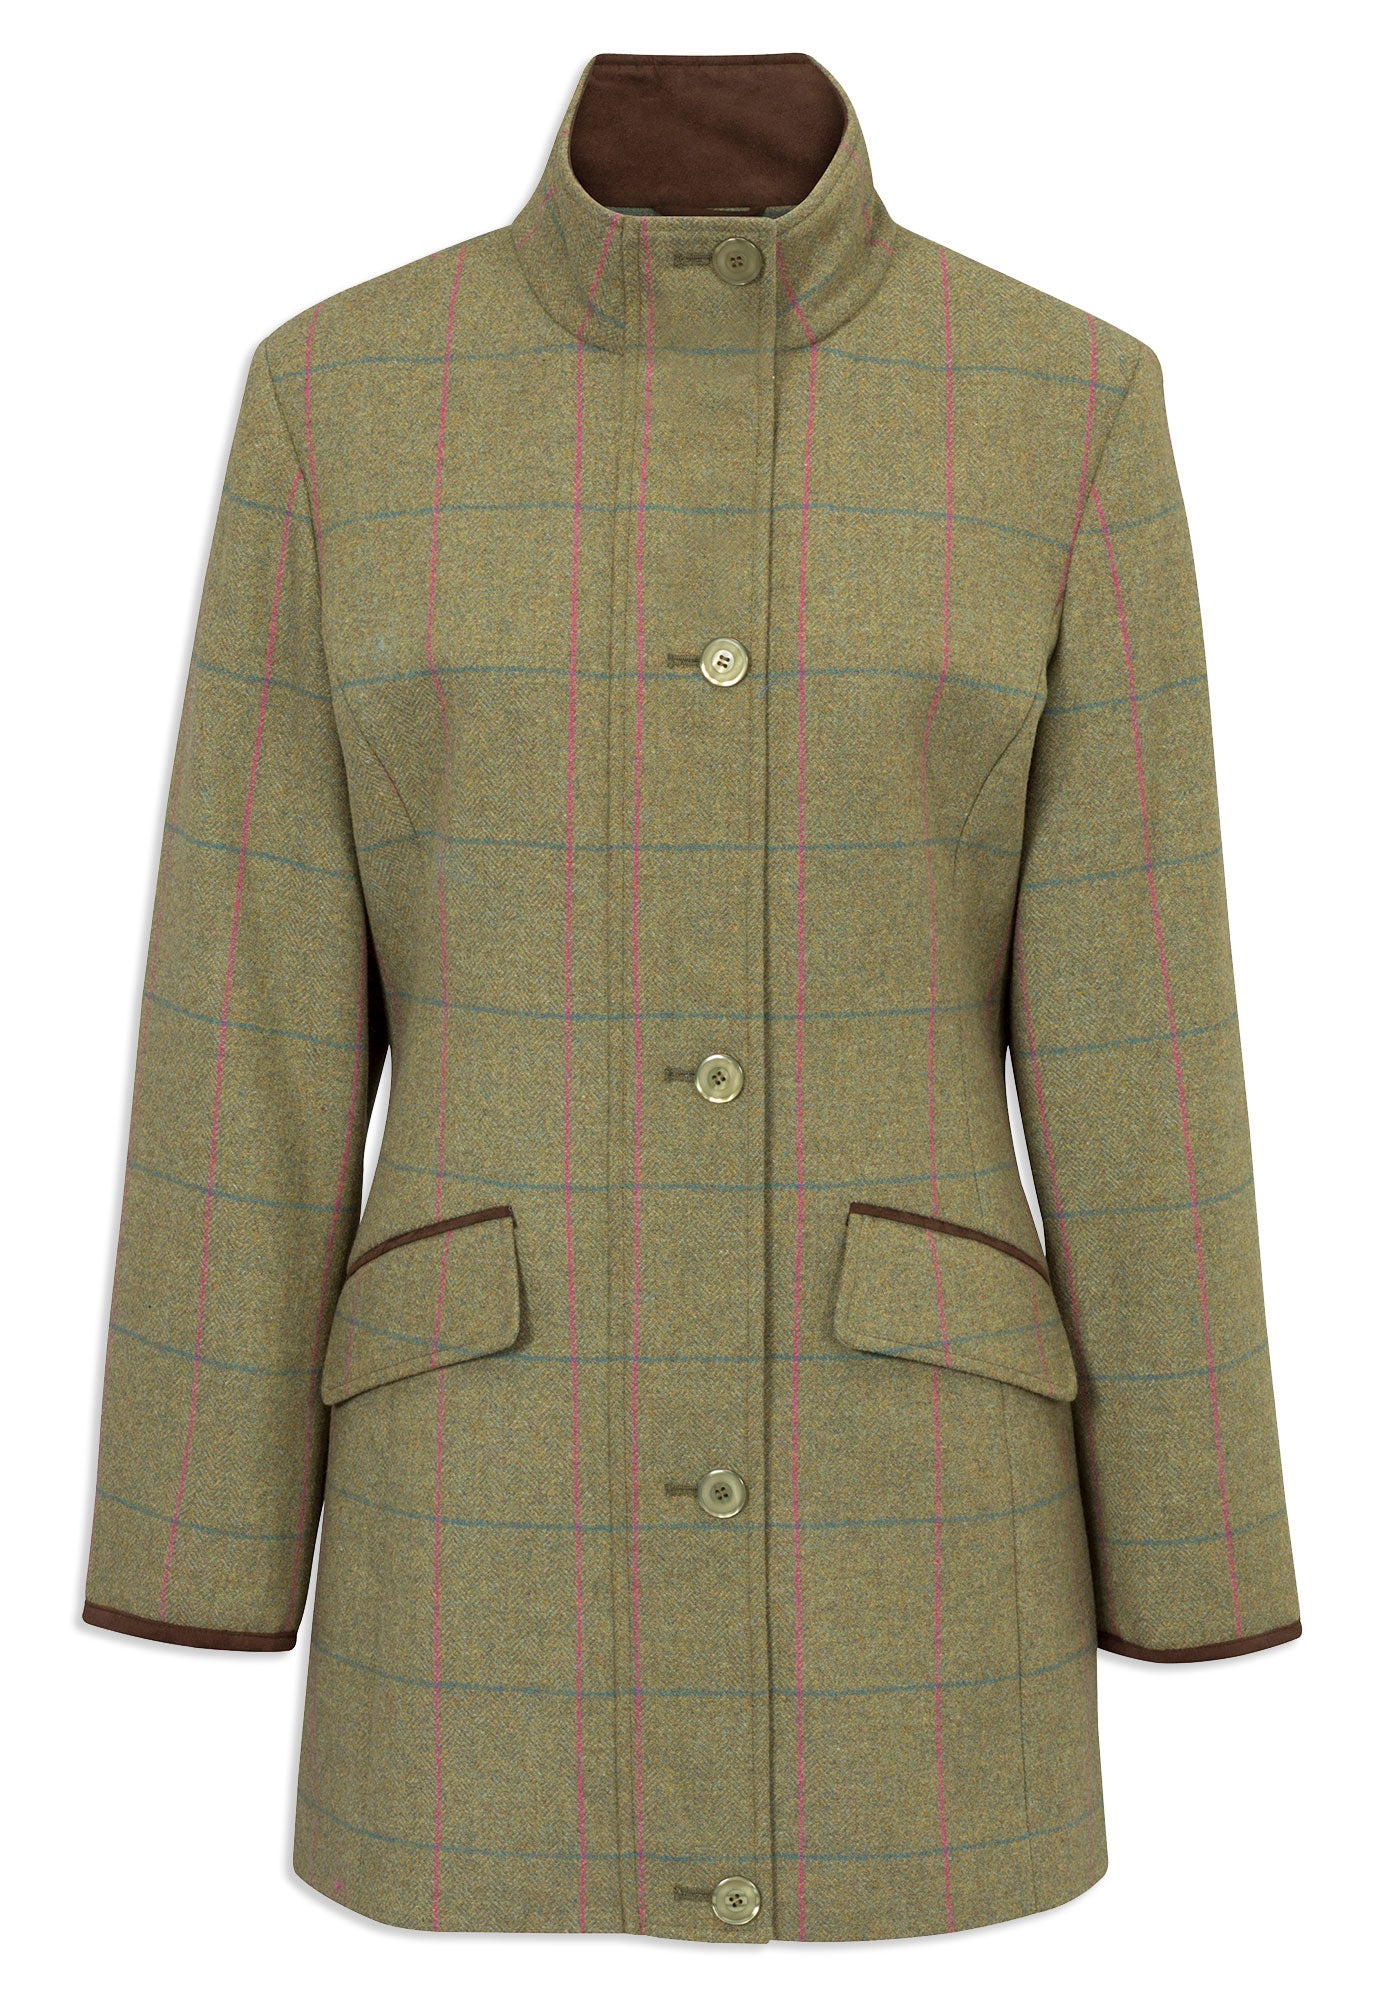 Alan Paine Combrook Field Jacket | Juniper